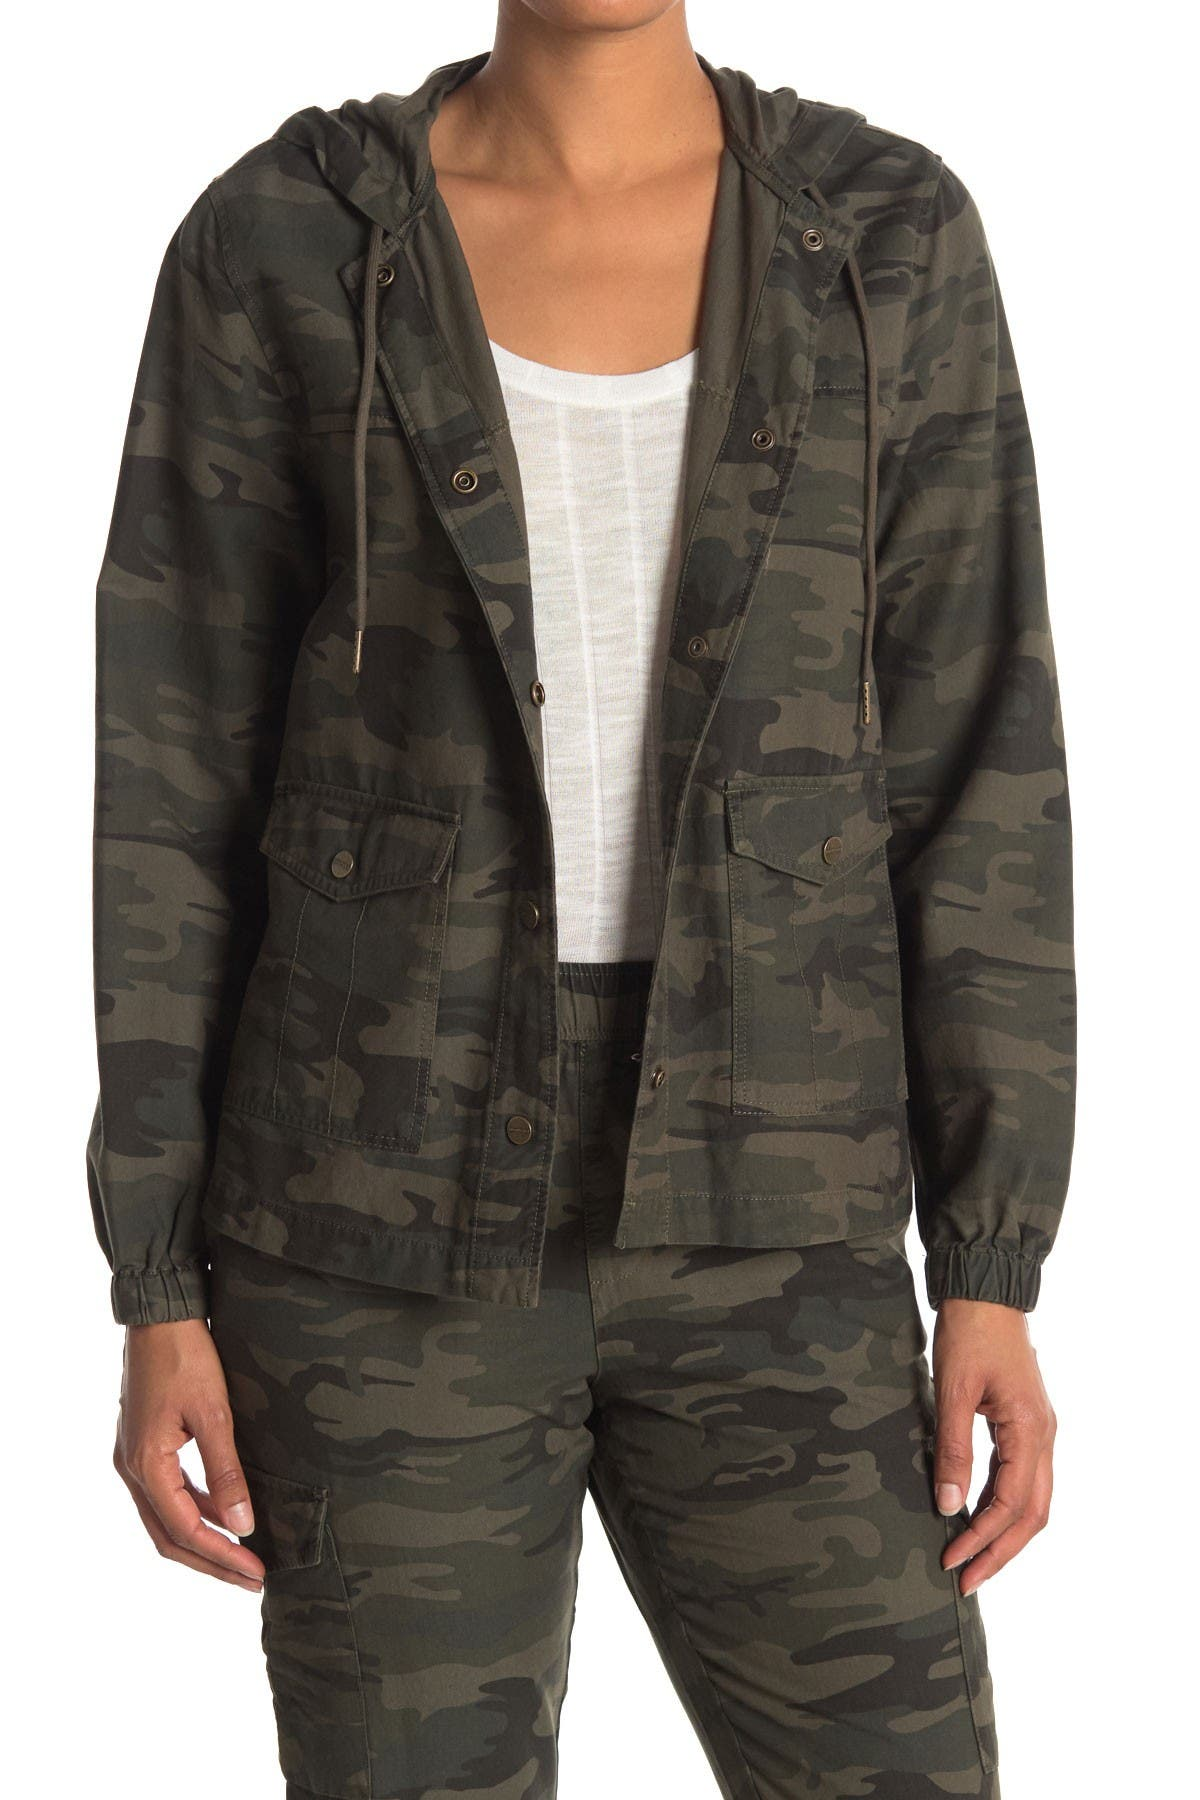 Image of Sanctuary Camo Print Hooded Utility Jacket